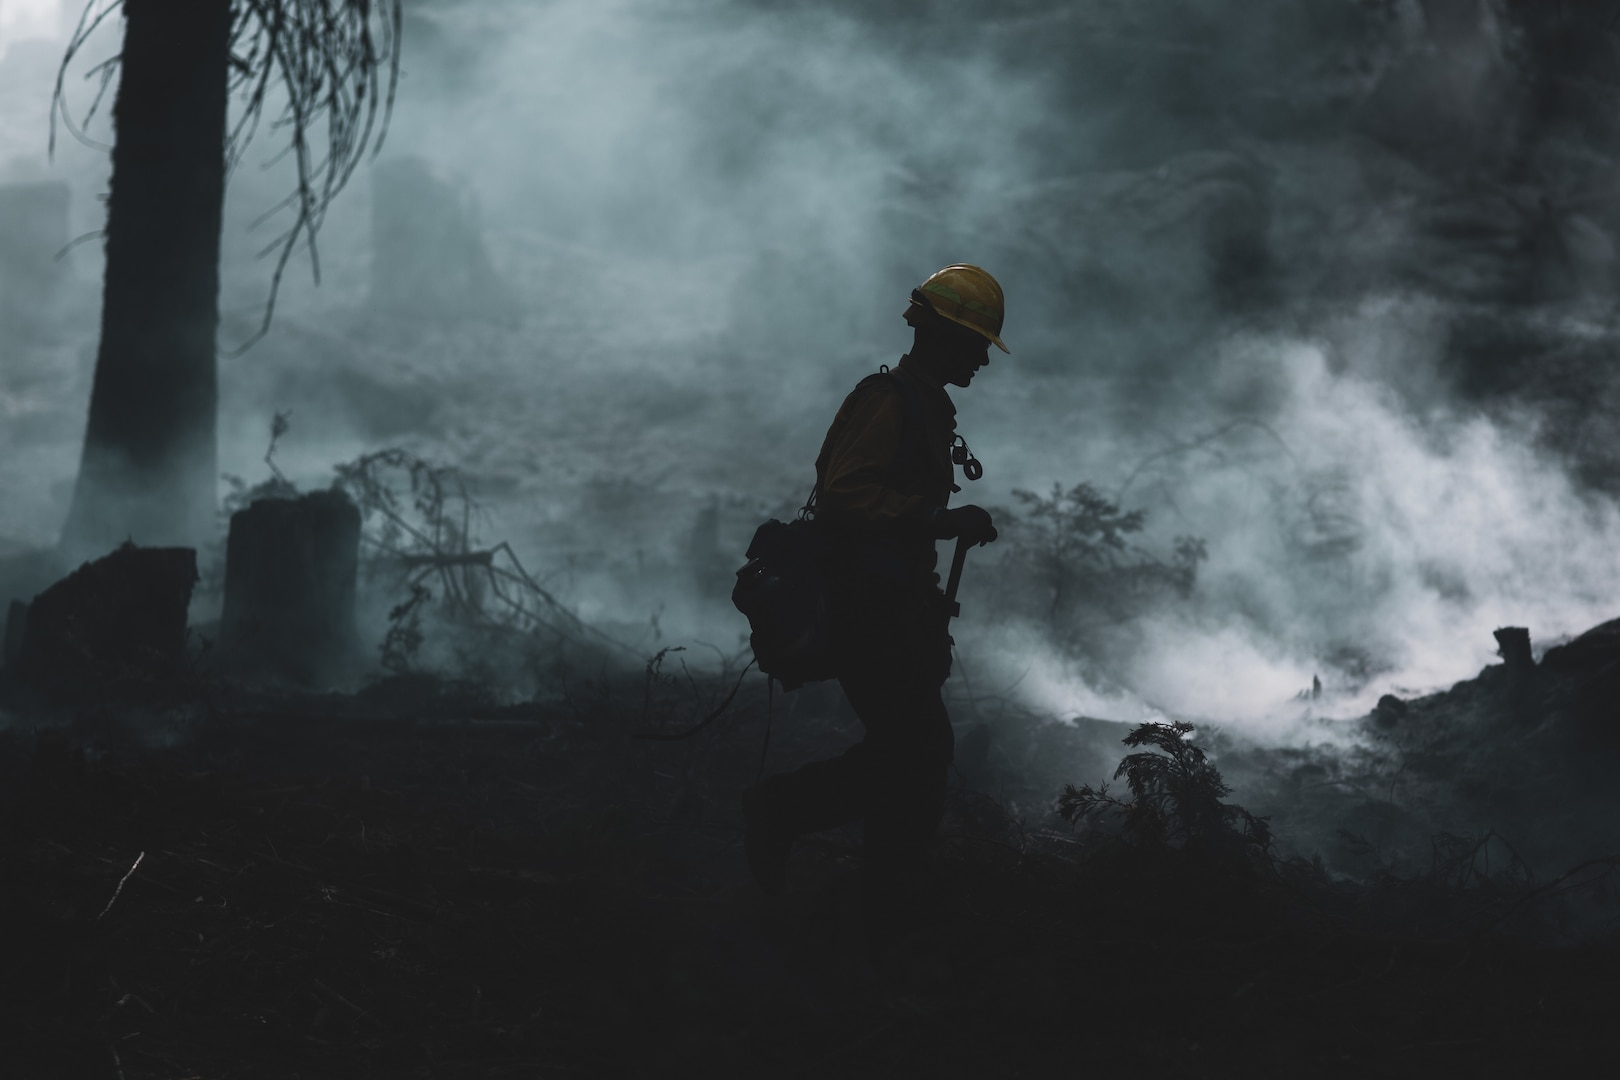 A silhouette of a Marine walking through gray smoke in a burned forest.